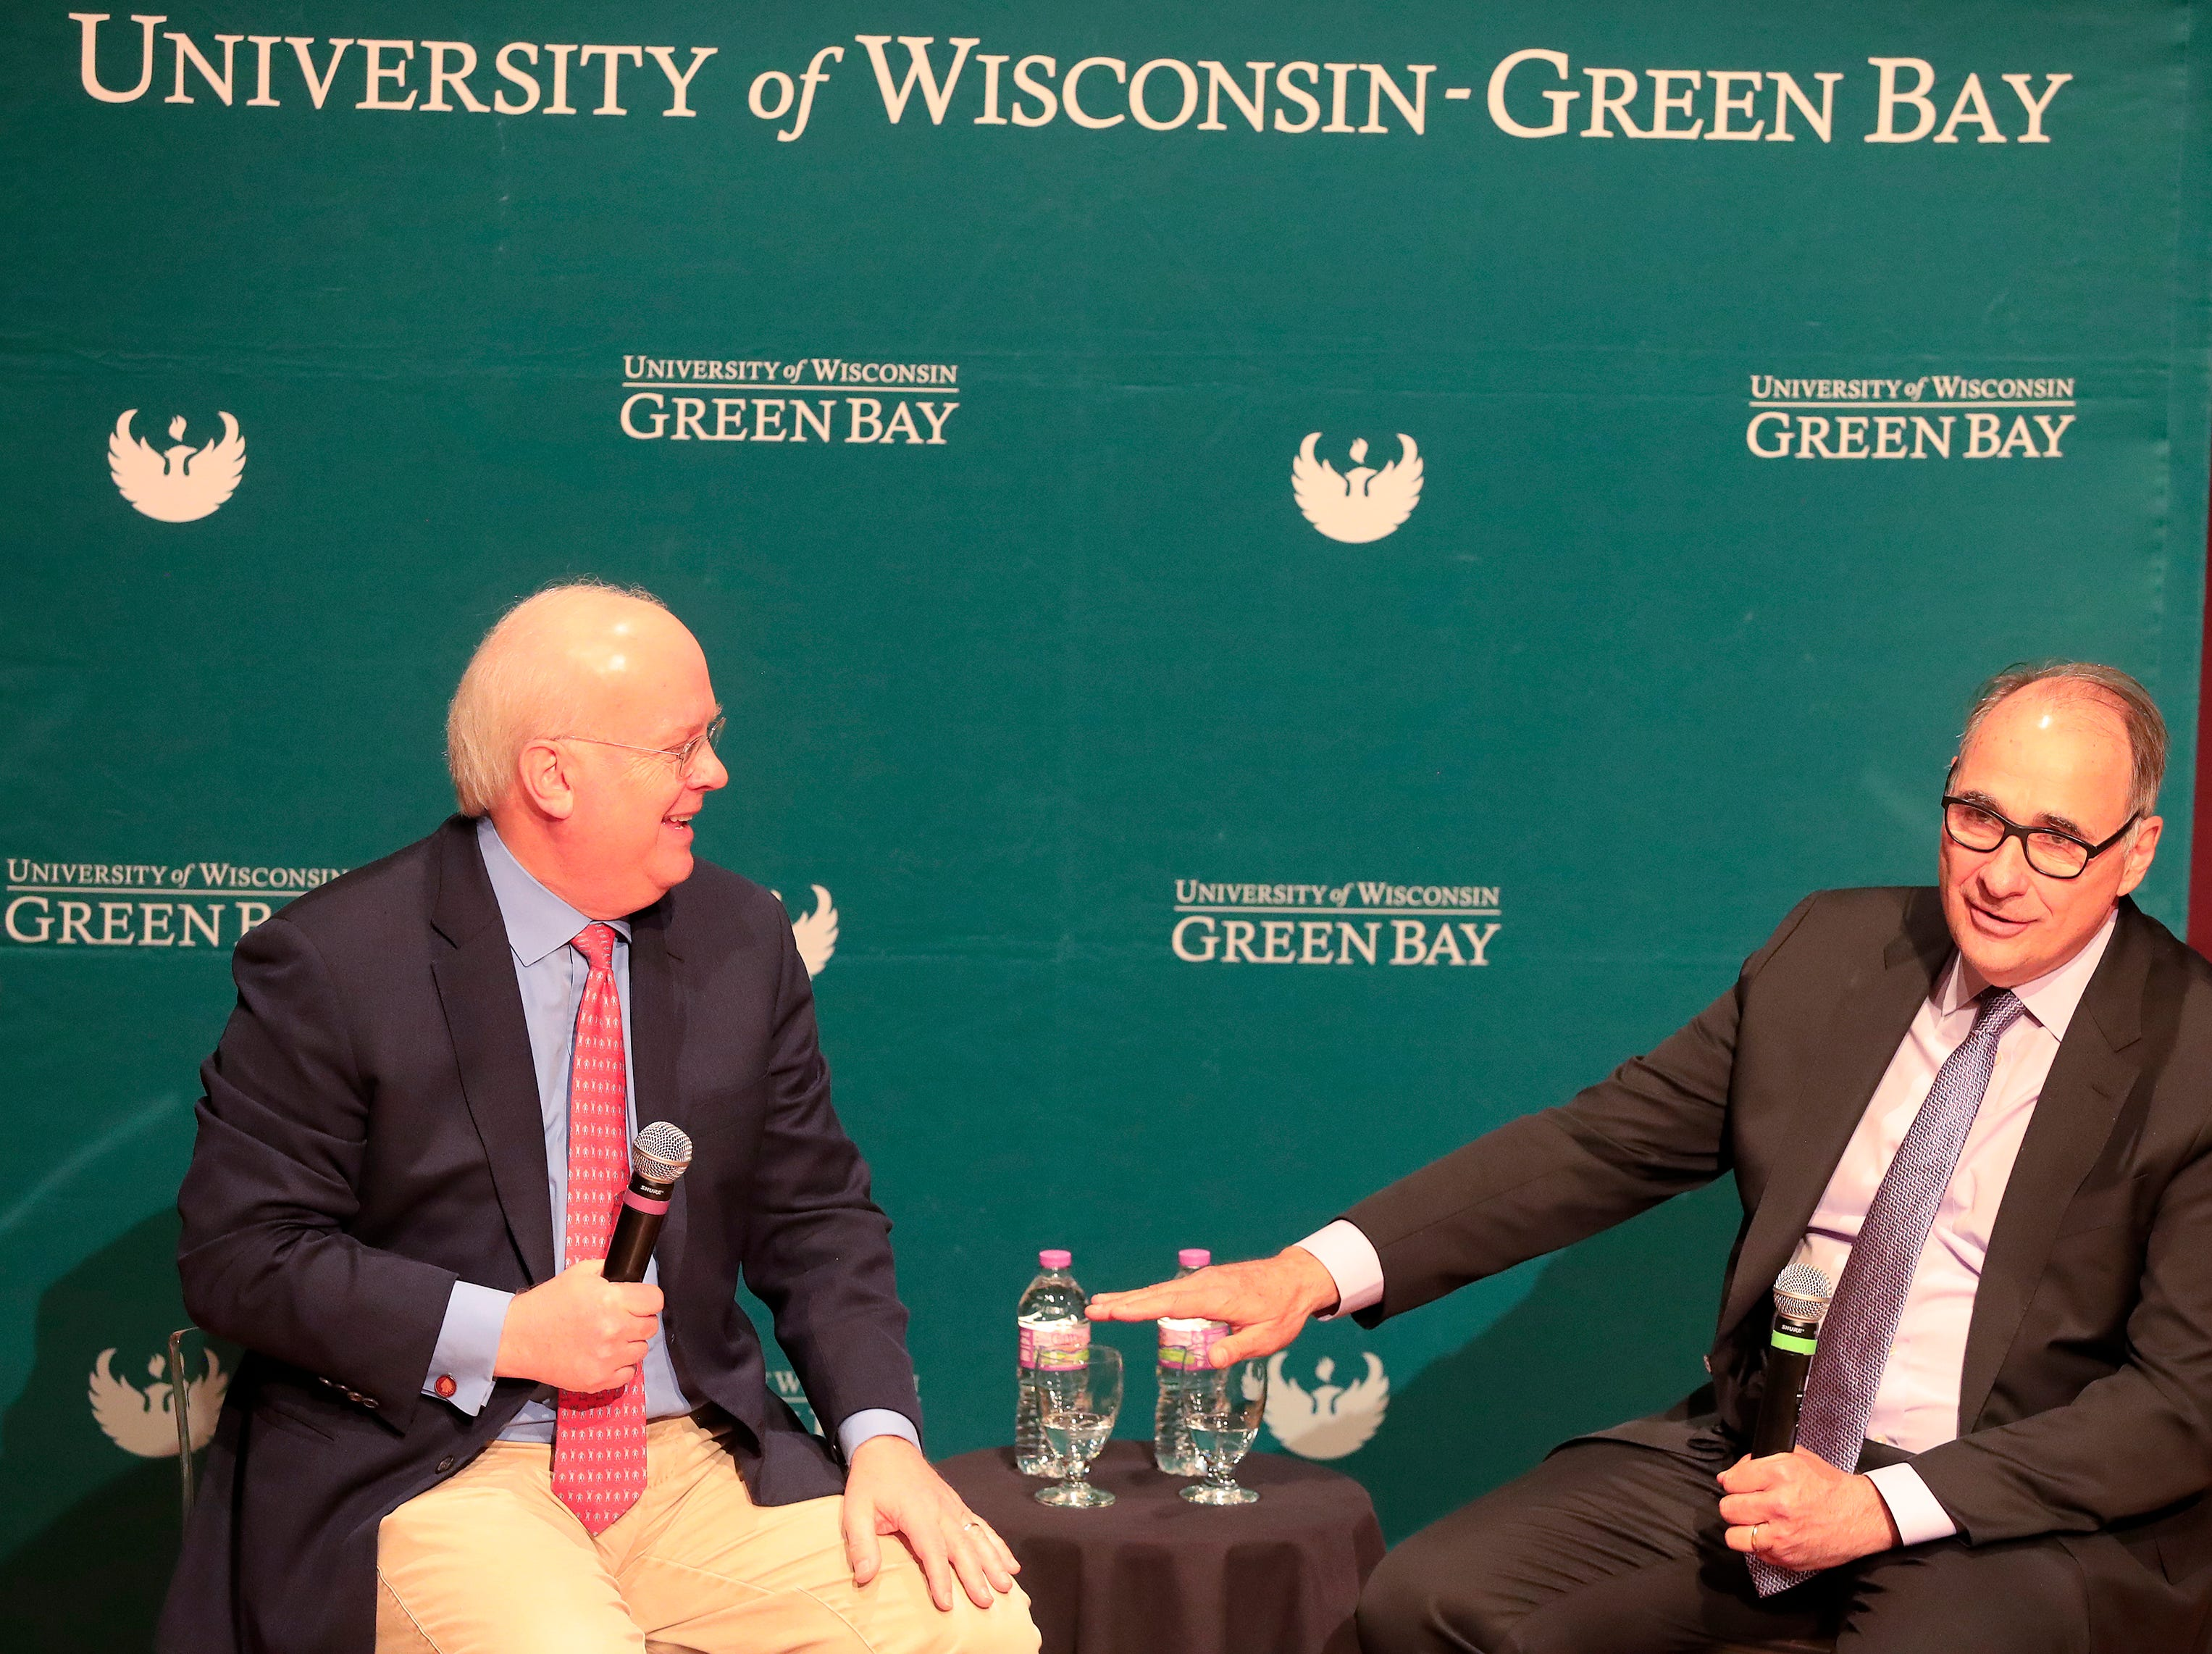 Political consultants Karl Rove (left) and David Axelrod participate in a Q&A session with students at UW-Green Bay on Wednesday, April 3, 2019 in Green Bay, Wis.